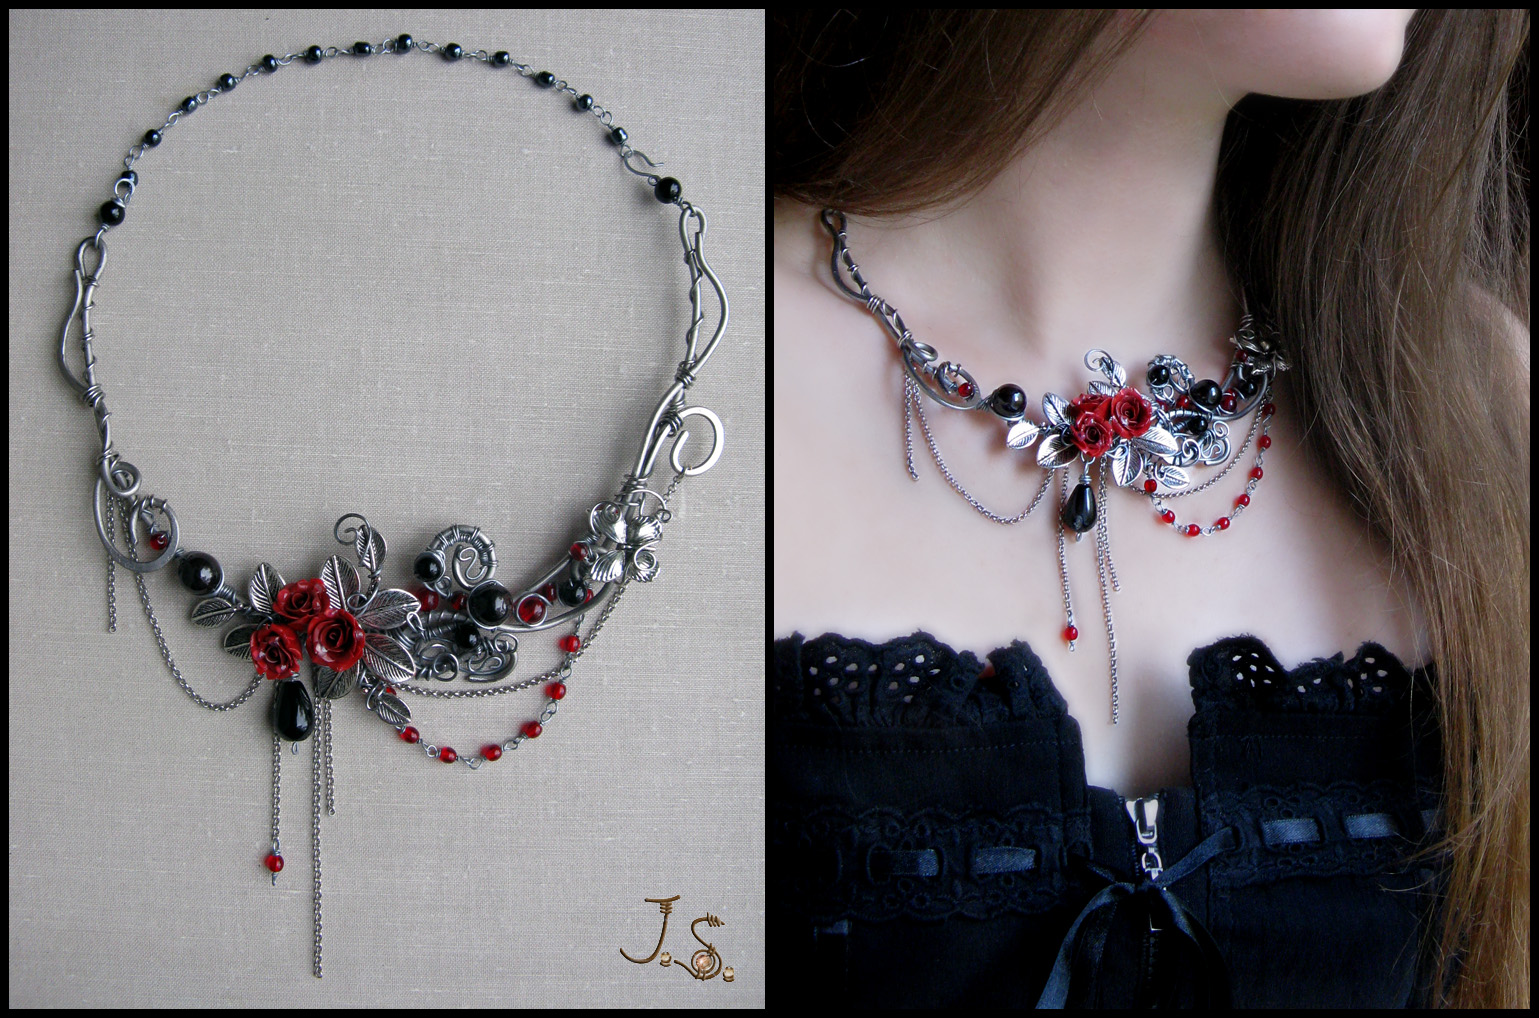 Dark passion necklace by JSjewelry